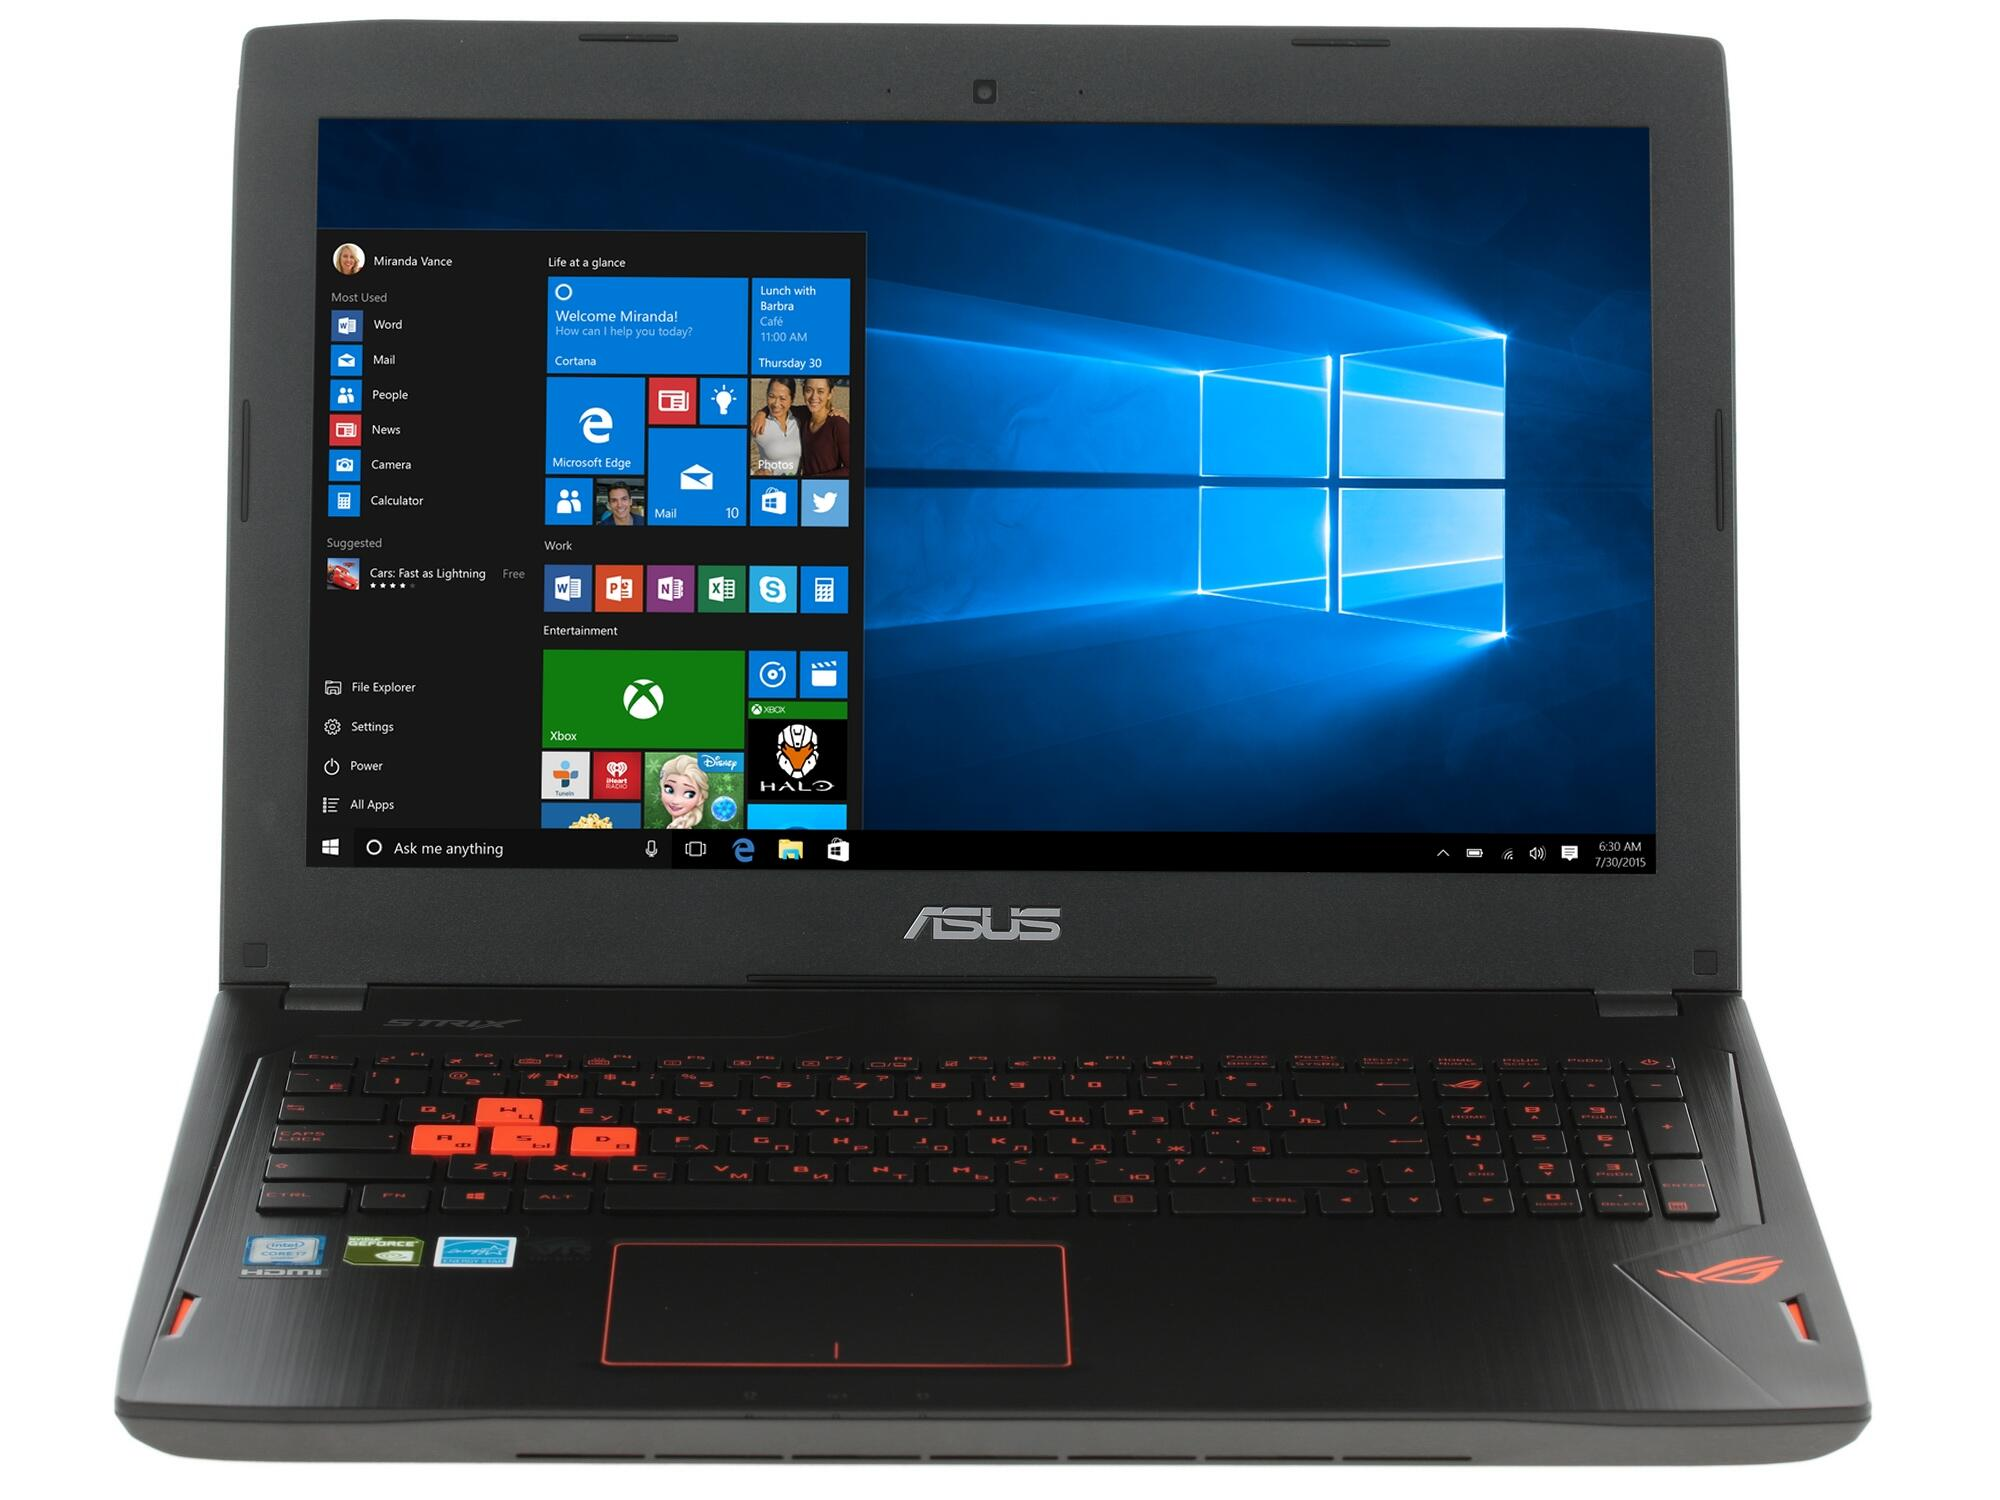 Ноутбук ASUS ROG G501VW-FY131T 90NB0AU3-M01950 (Intel Core i7-6700HQ 2.6 GHz/8192Mb/1000Gb/No ODD/nVidia GeForce GTX 960M 2048Mb/Wi-Fi/Cam/15.6/1920x1080/Windows 10 64-bit)